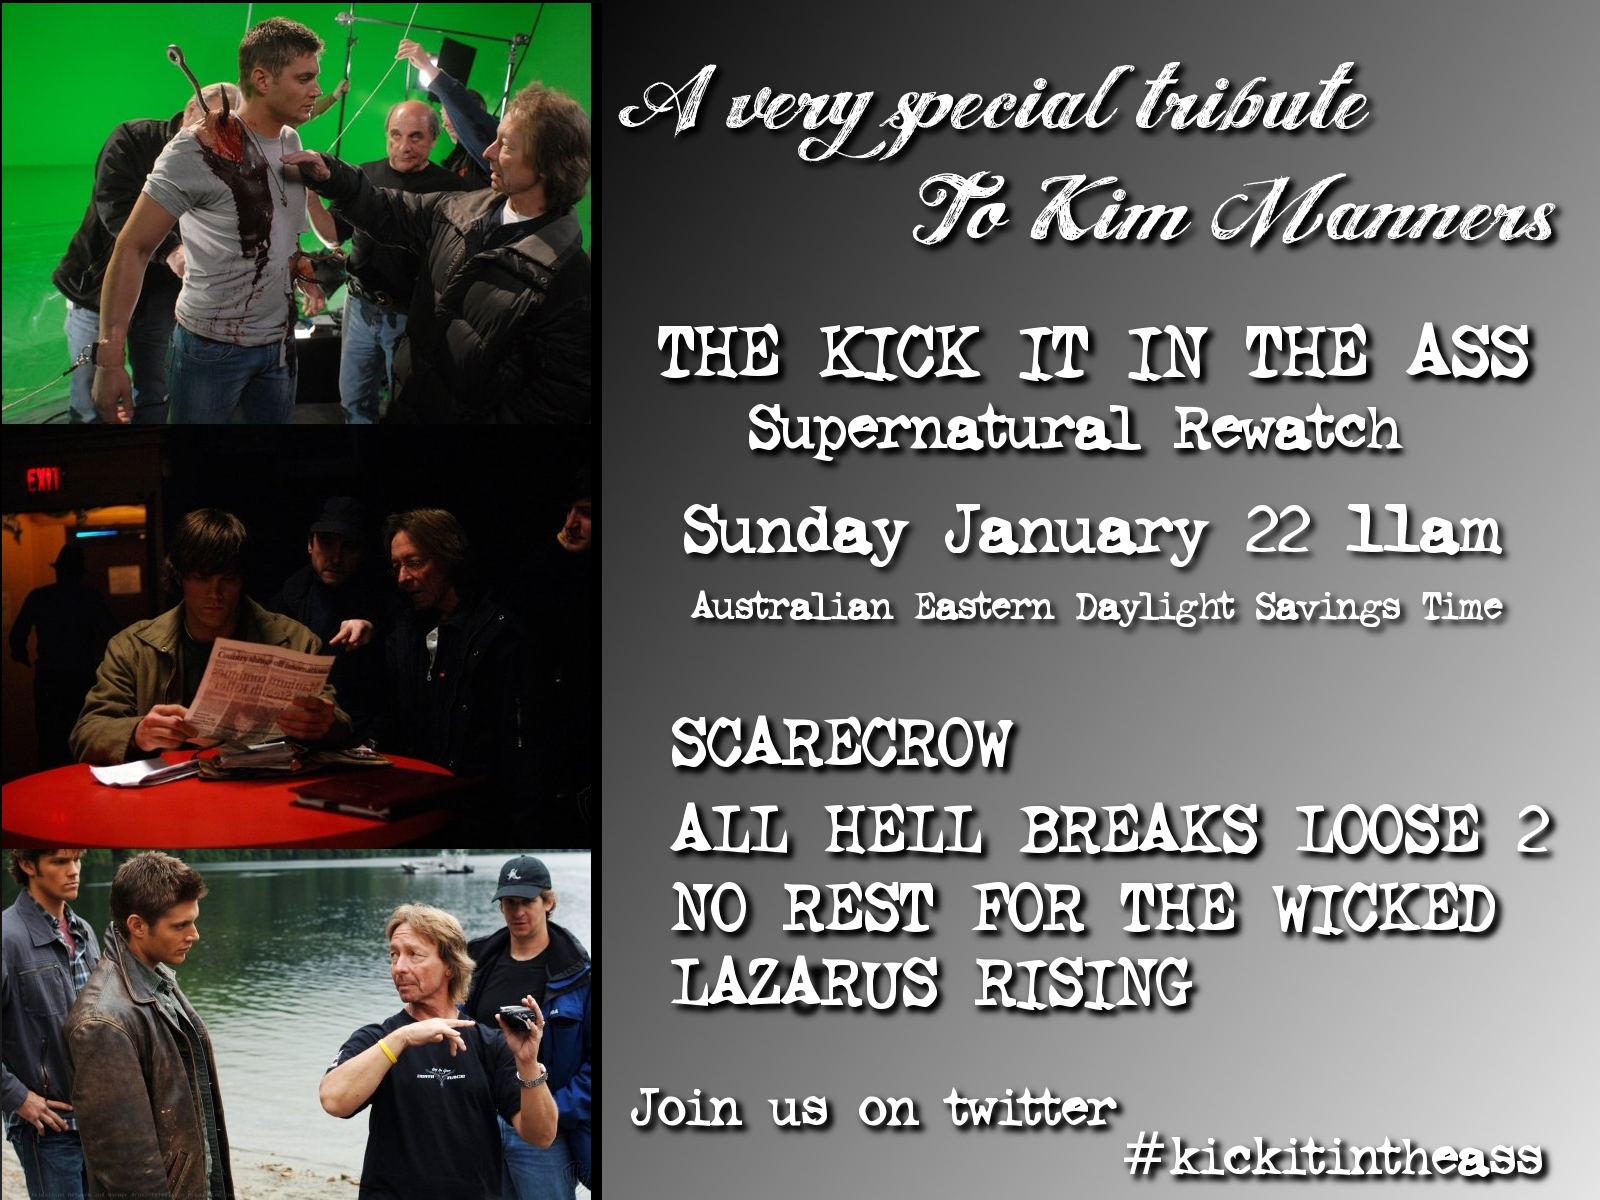 Kim Manners is a director who has shot every third episode of The X-Files and Supernatural 42